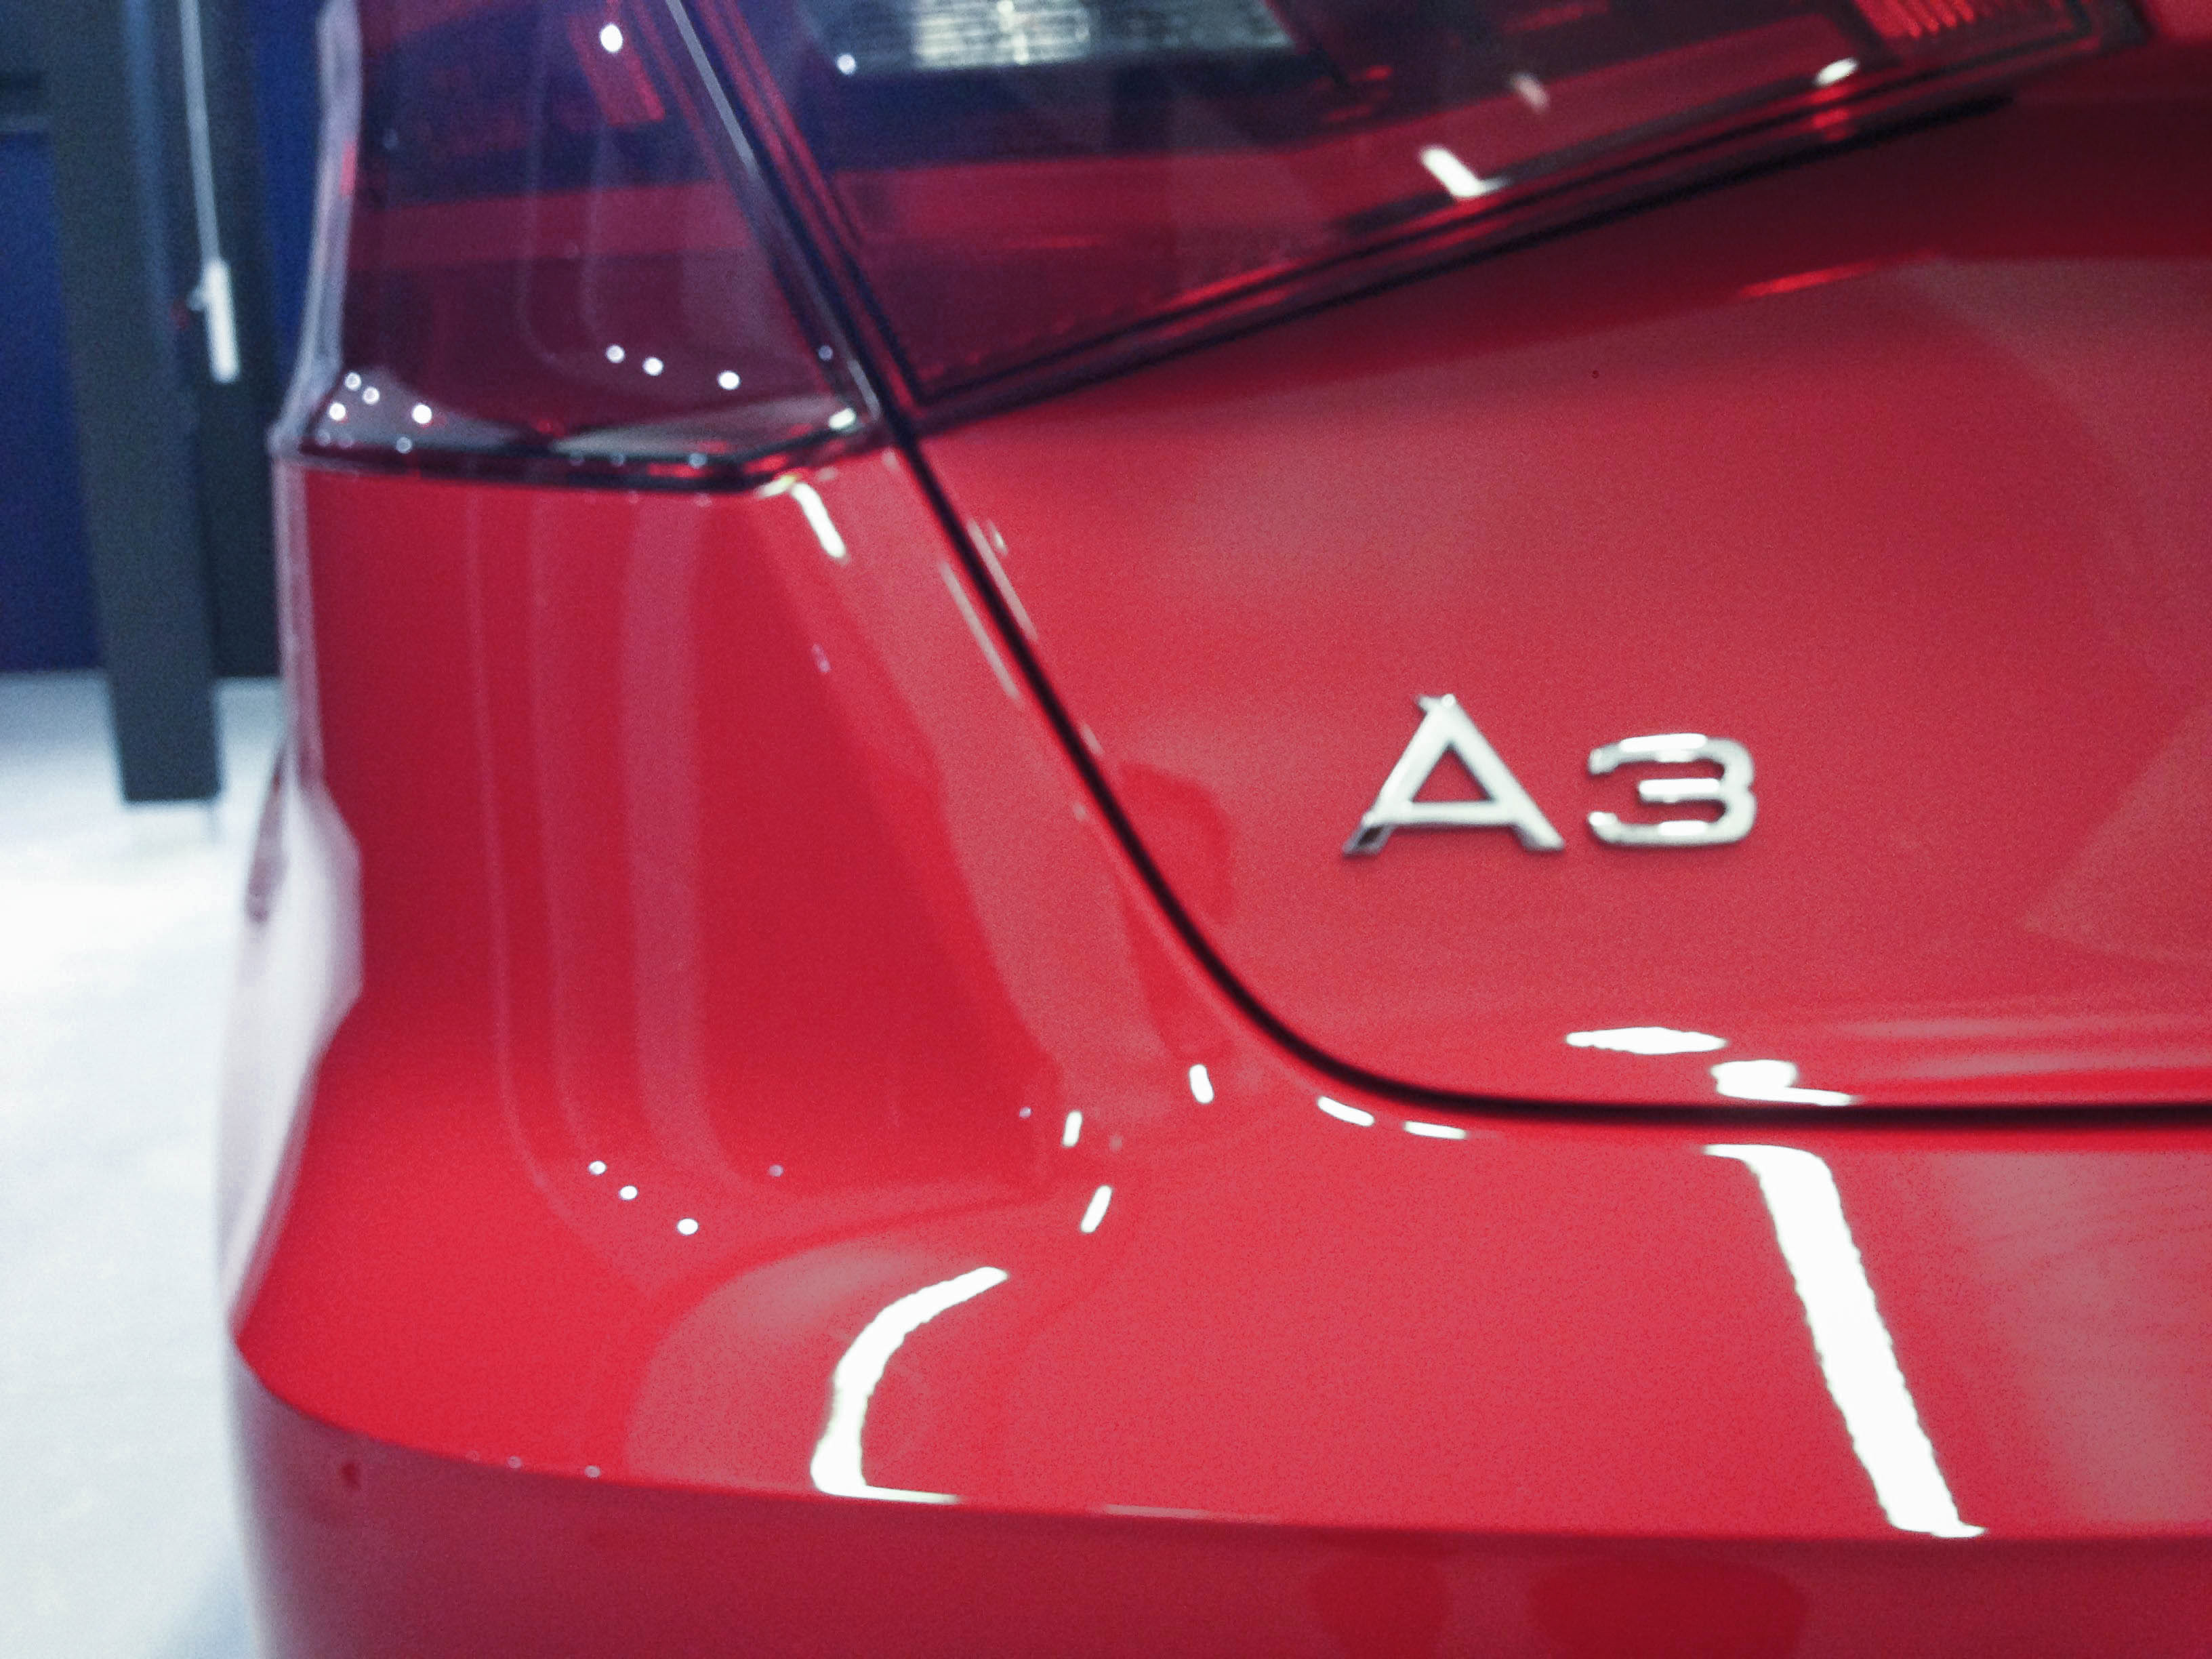 Audi A3 (Misano Red) – Rear detail